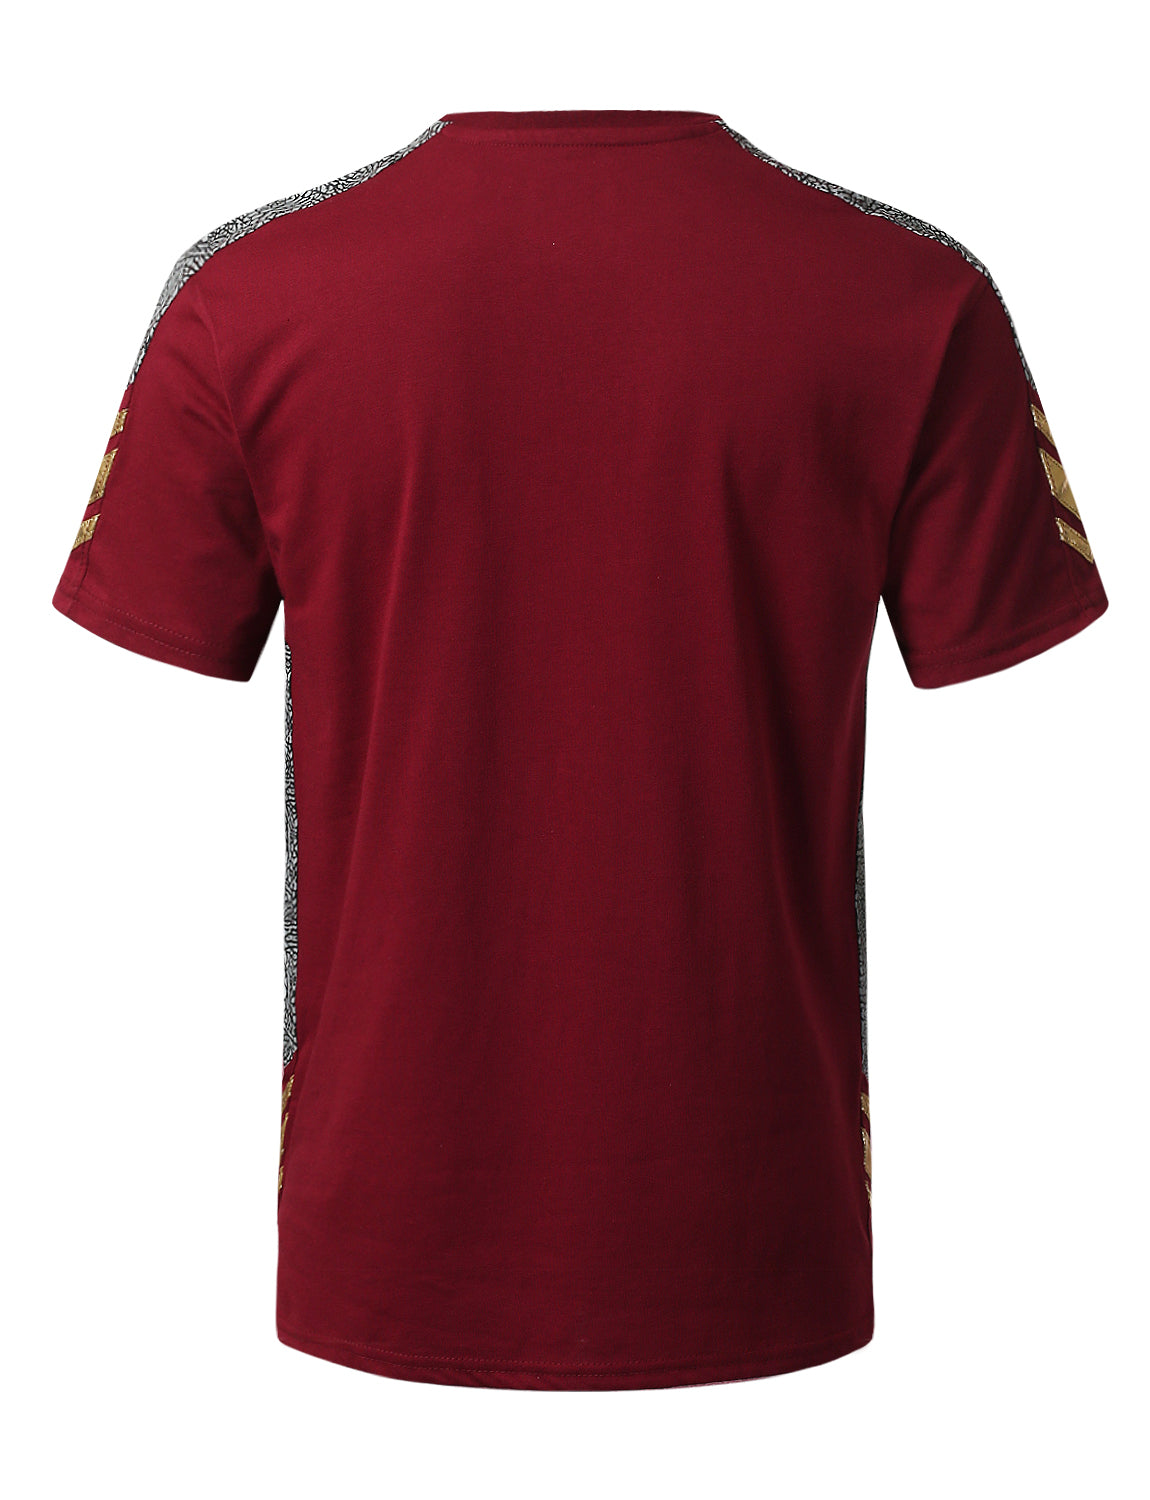 BURGUNDY Color Block Side Taping T-shirt - URBANCREWS